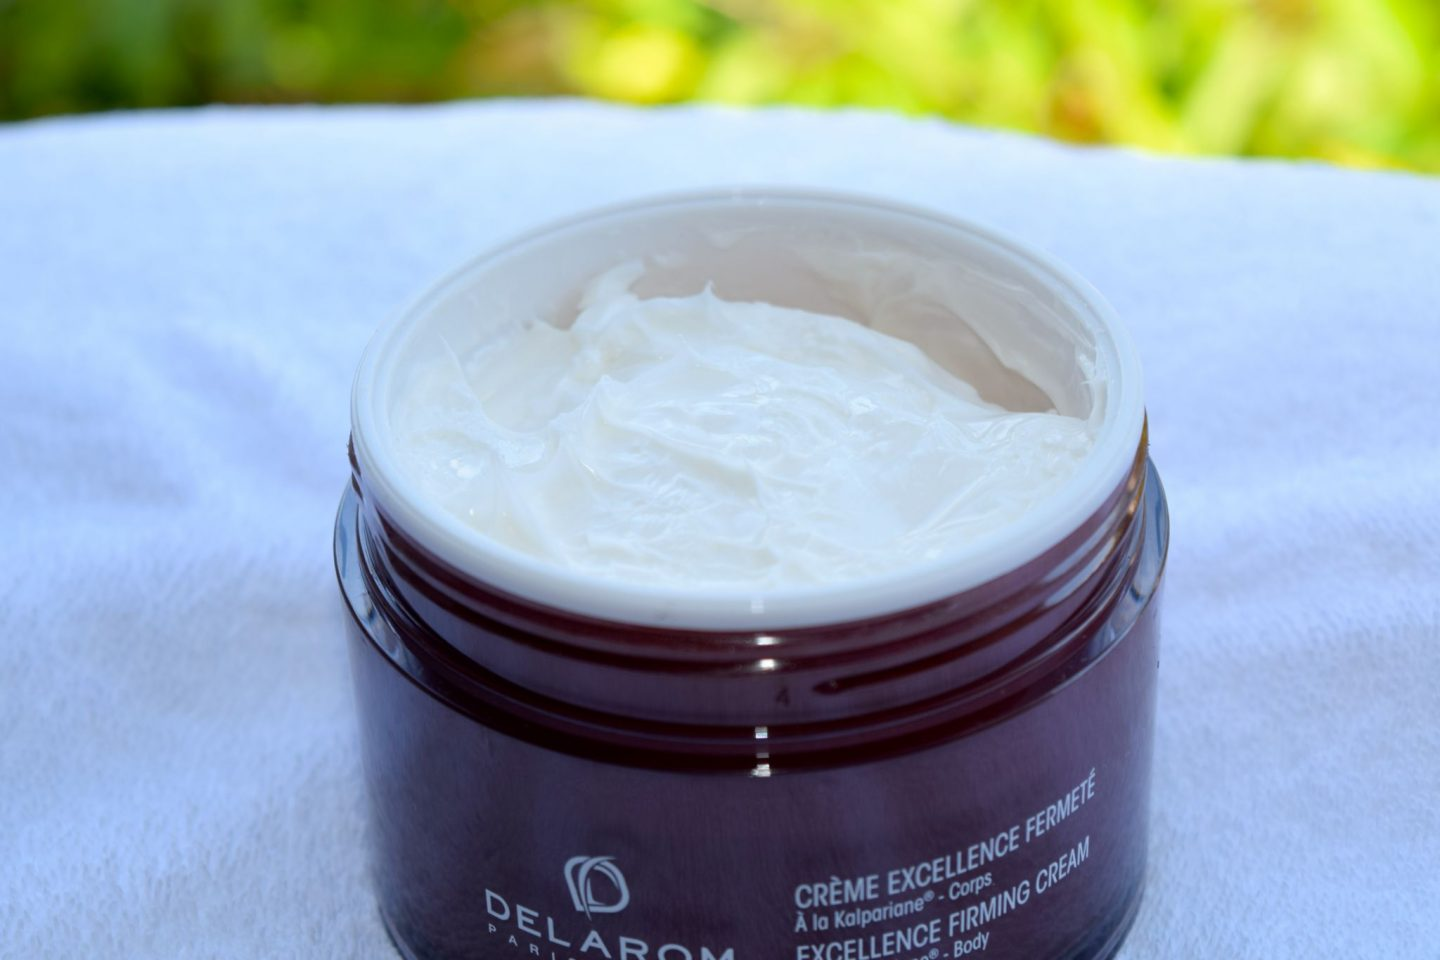 Delarom Excellence Firming Cream Pot 1